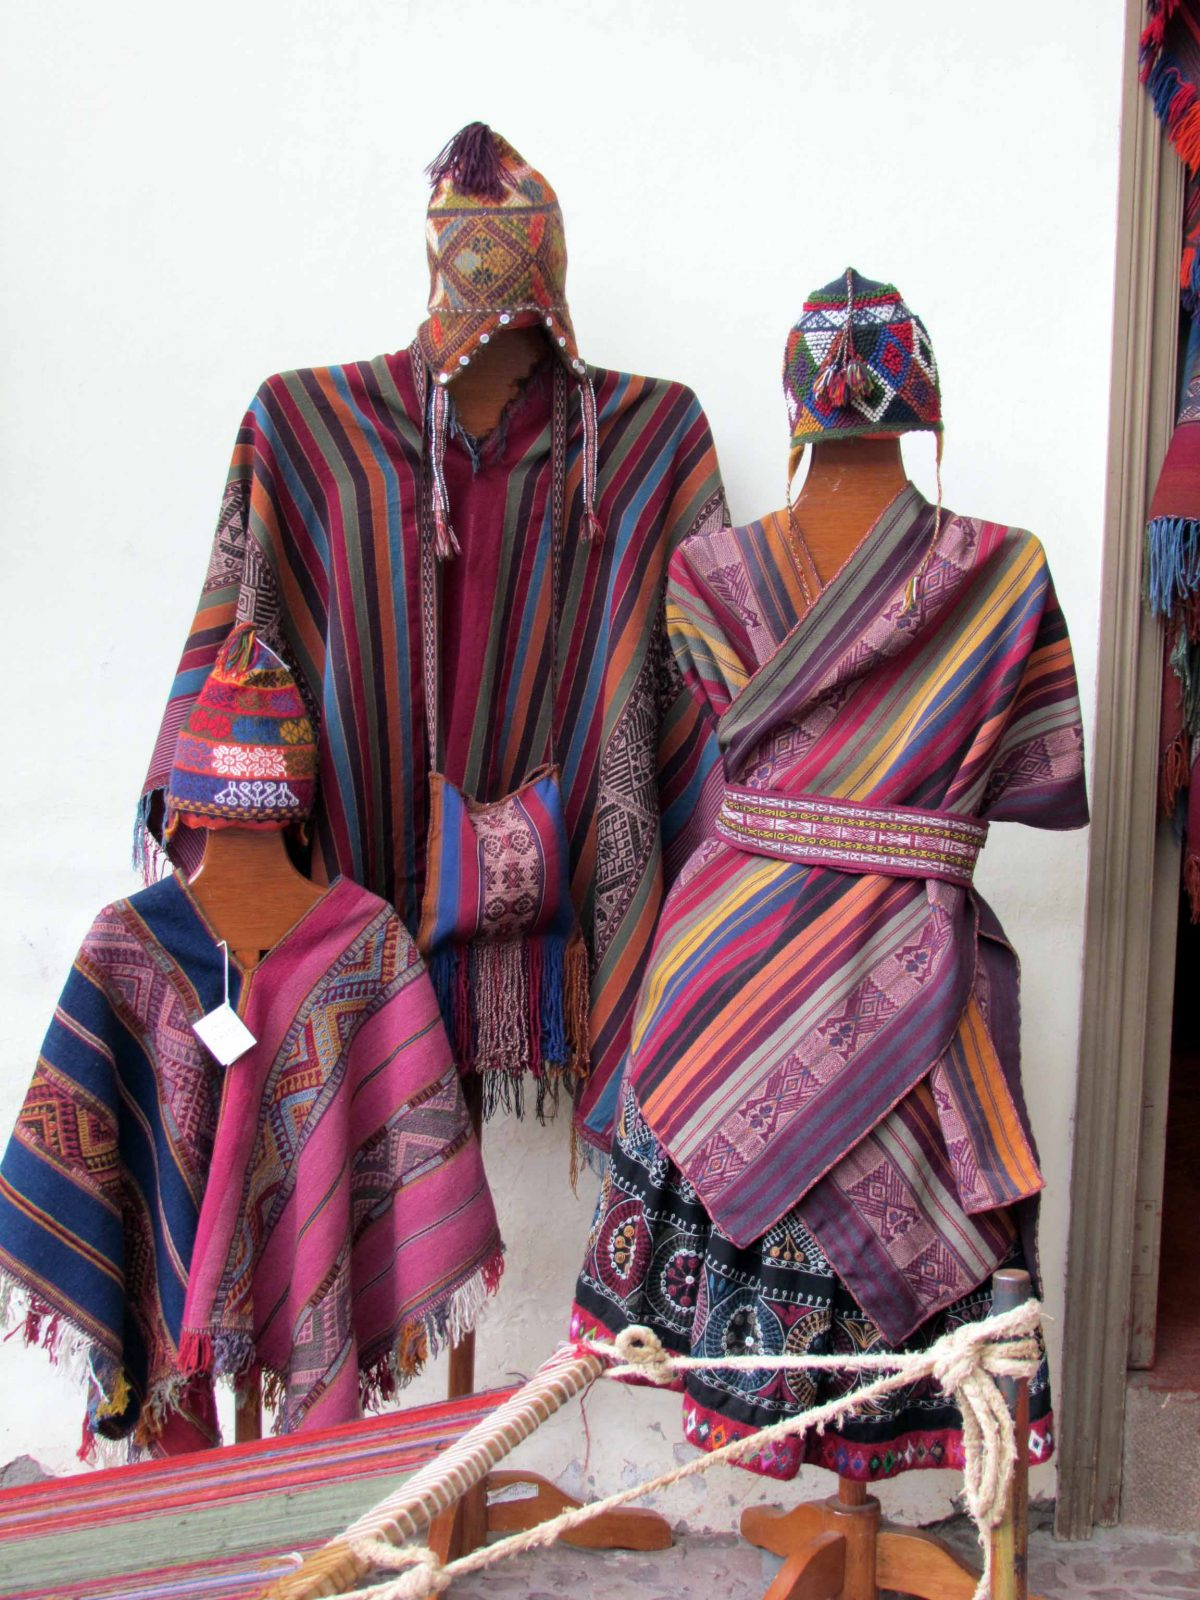 Samples of work for sale; The Center for Traditional Textiles of Cusco, Peru   ©Angela Drake